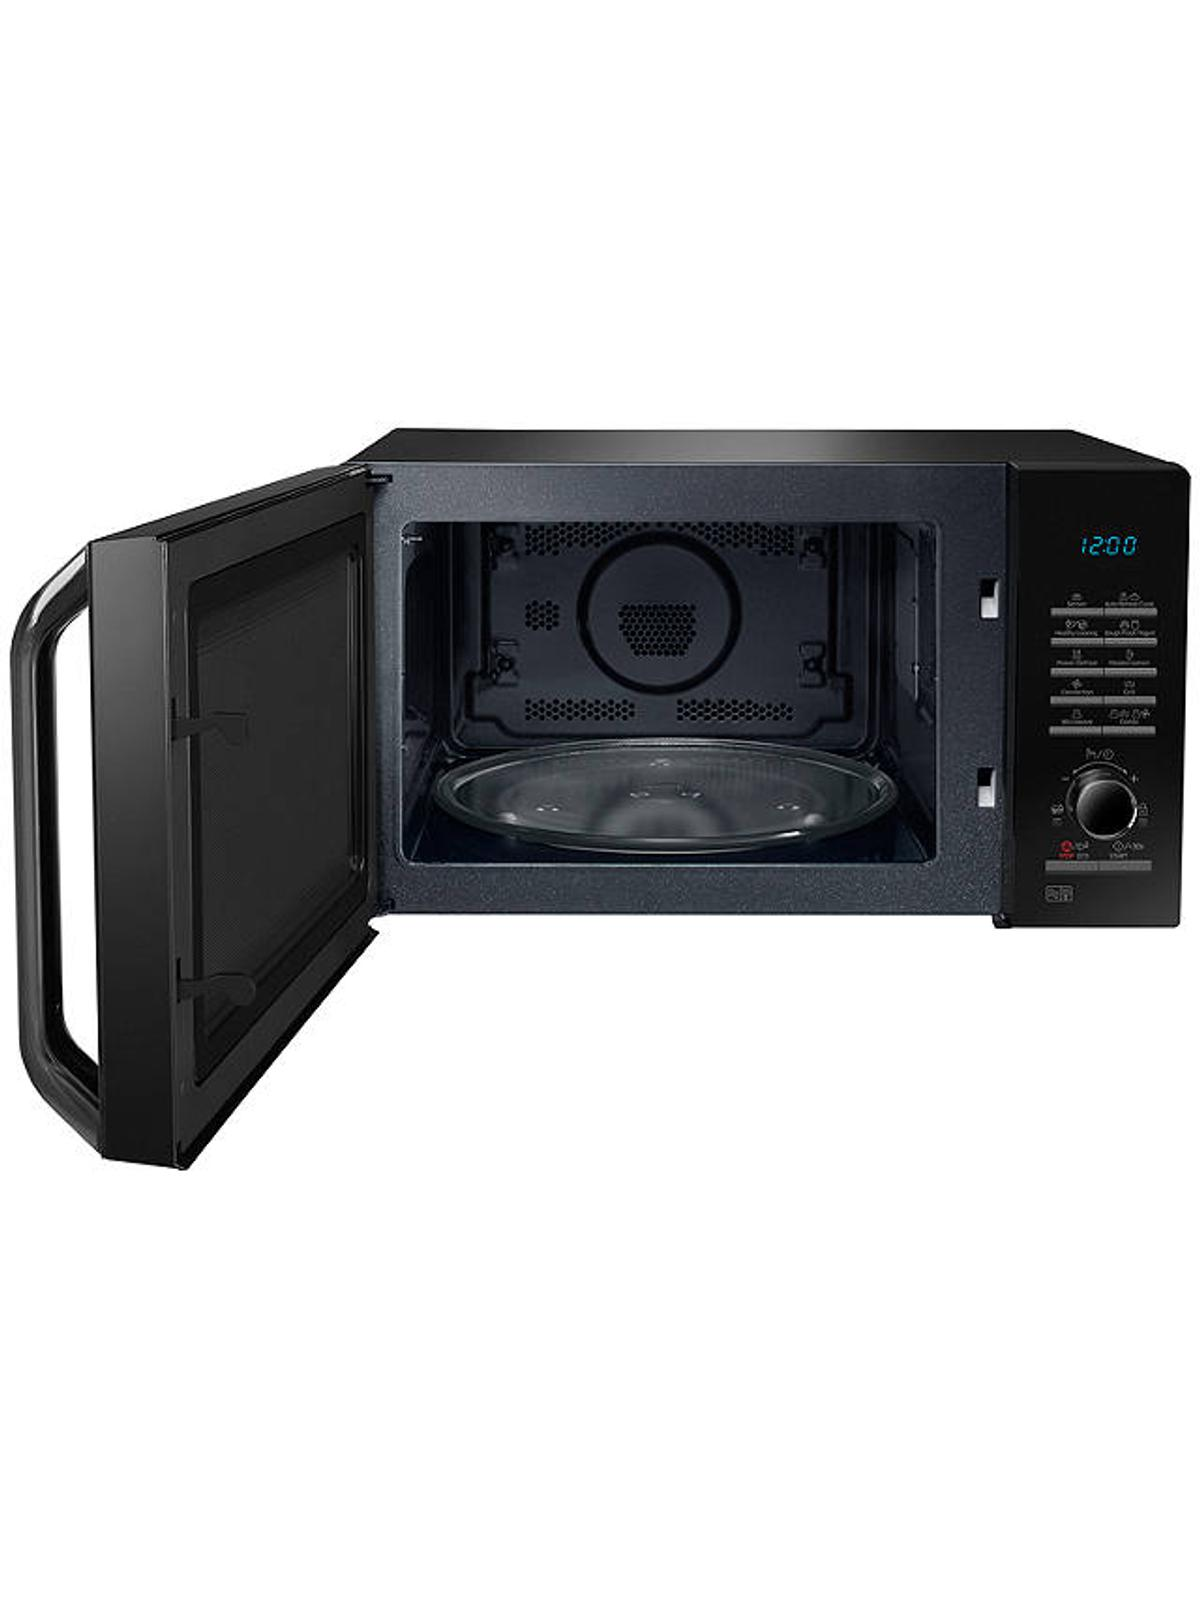 Combination Microwave Oven Samsung Combination Microwave Oven